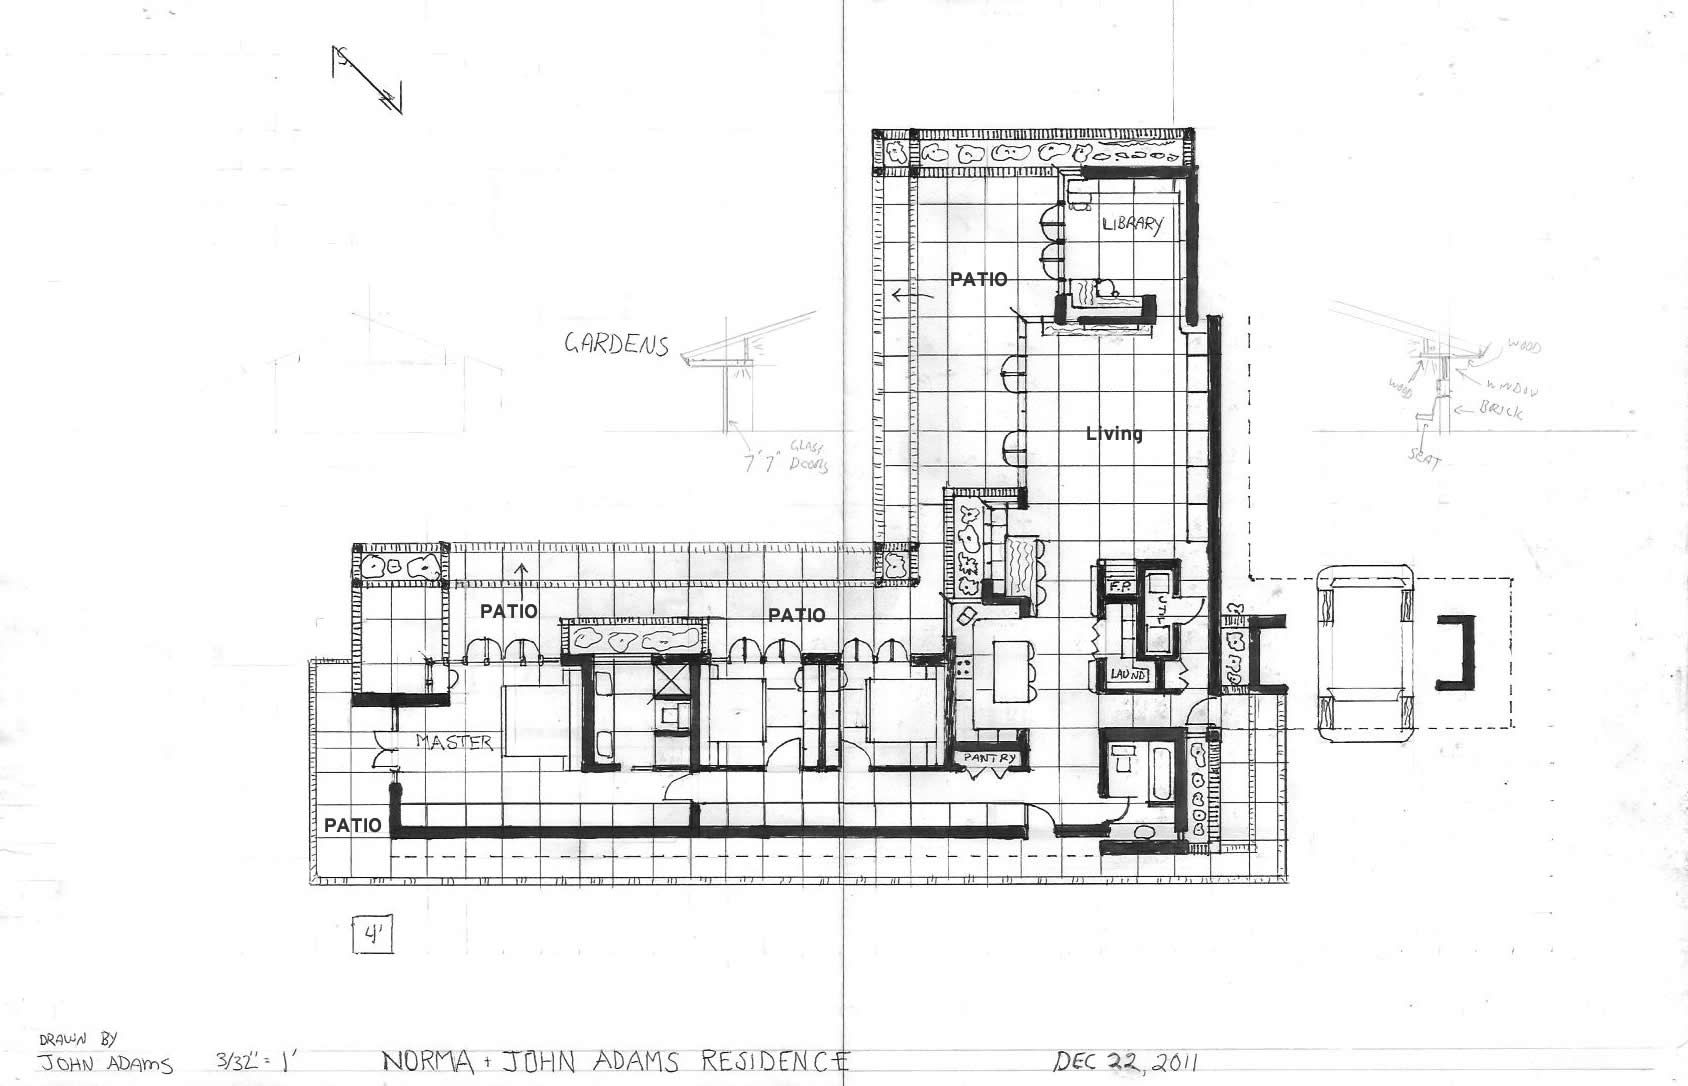 Plan houses design frank lloyd wright pesquisa google Frank home plans